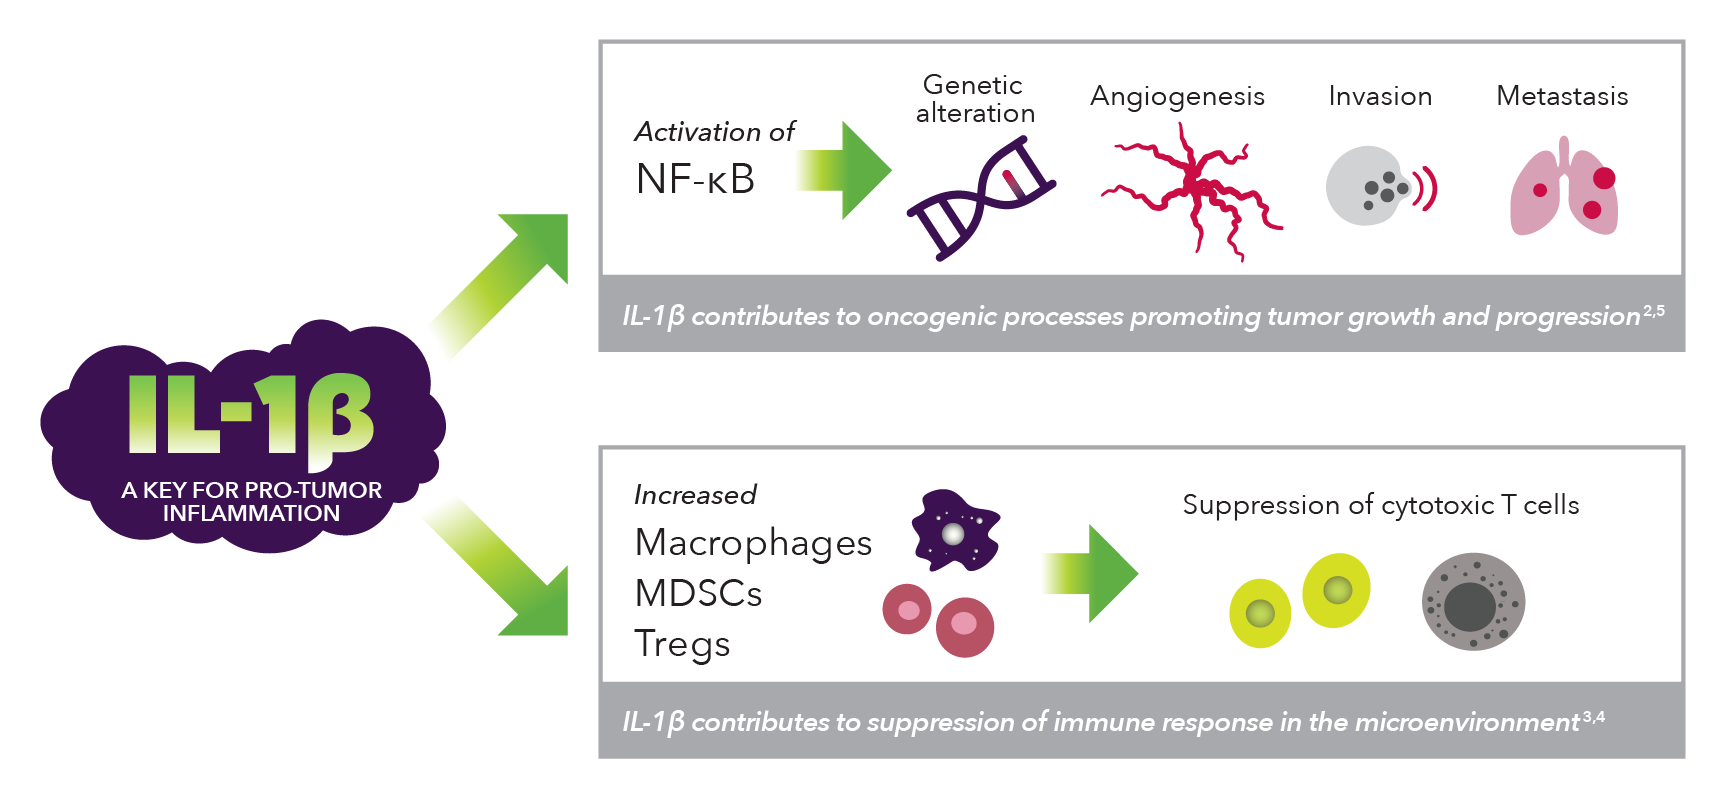 Visual image illustrating how IL-1β contributes to both oncogenic processes promoting tumor growth and progression and suppression of the immune response in the microenvironment.